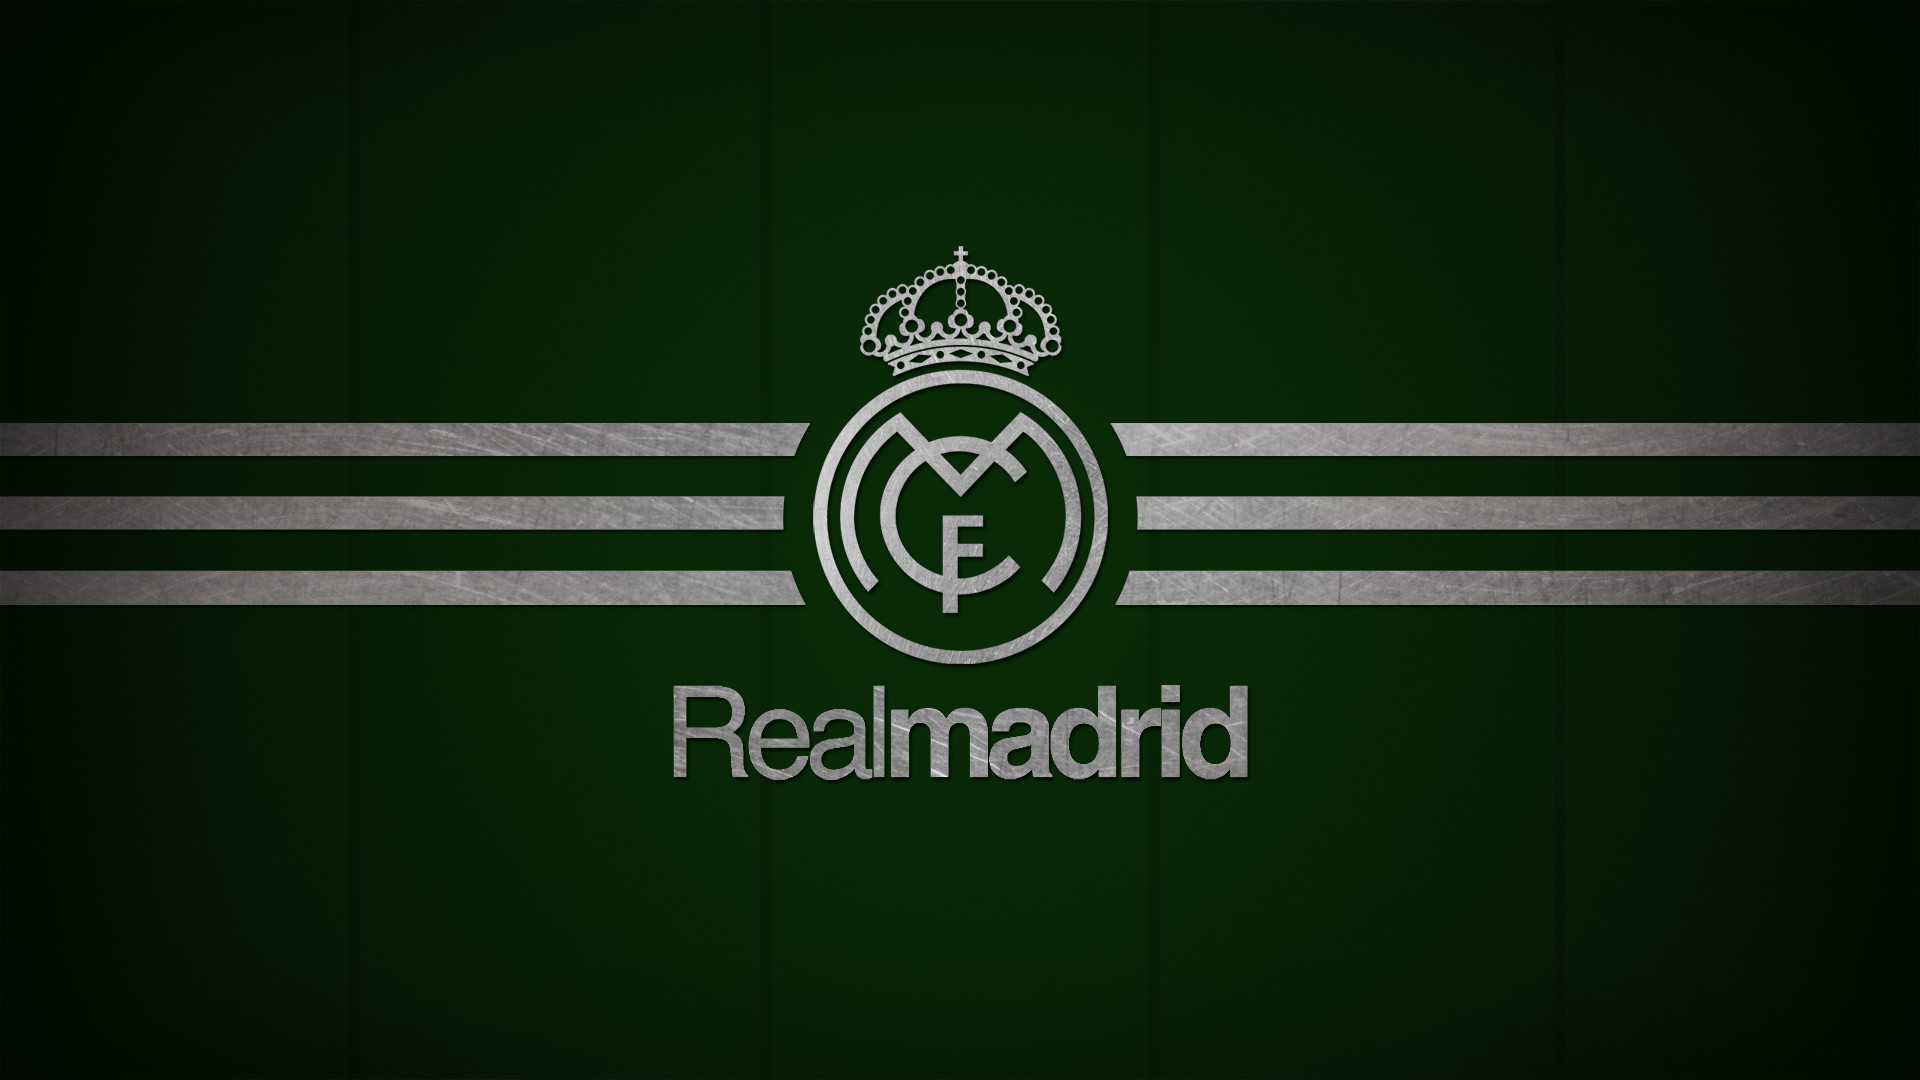 1920x1080 Real Madrid Logo Black Wallpaper HD.  real_madrid_wallpapers__hd_35_green_background